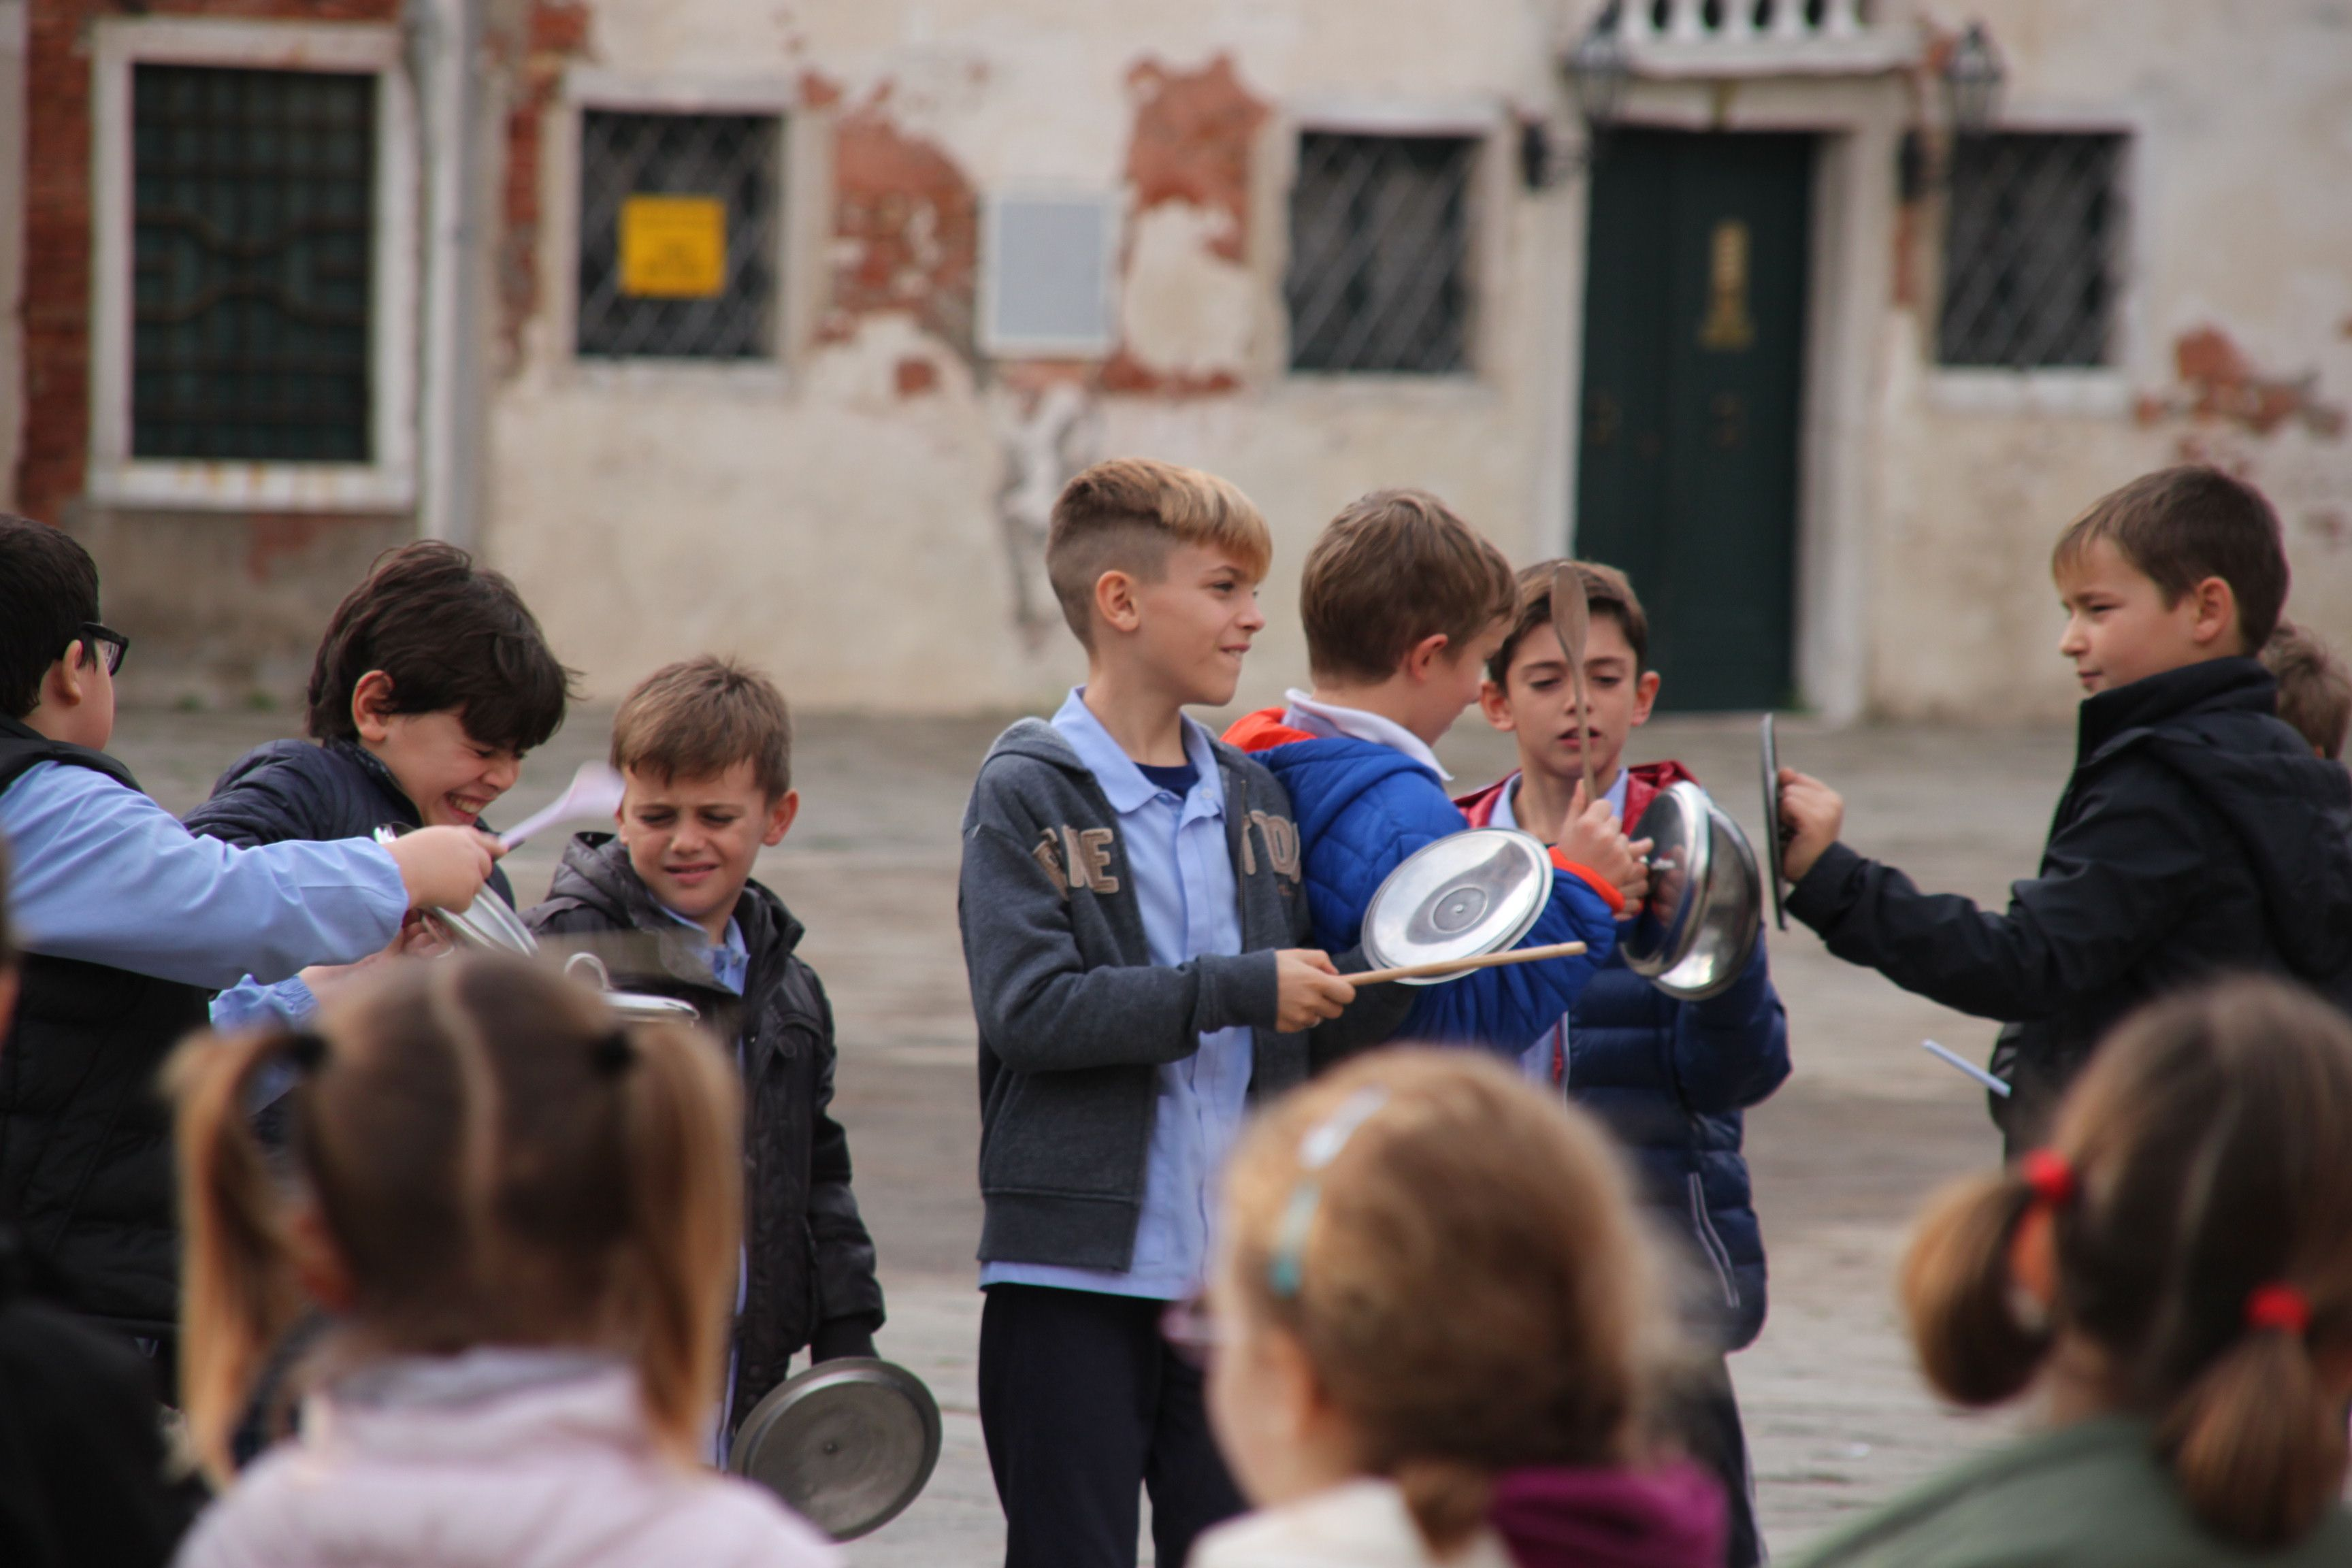 Pan lids get a bashing all in the name of San Martino!